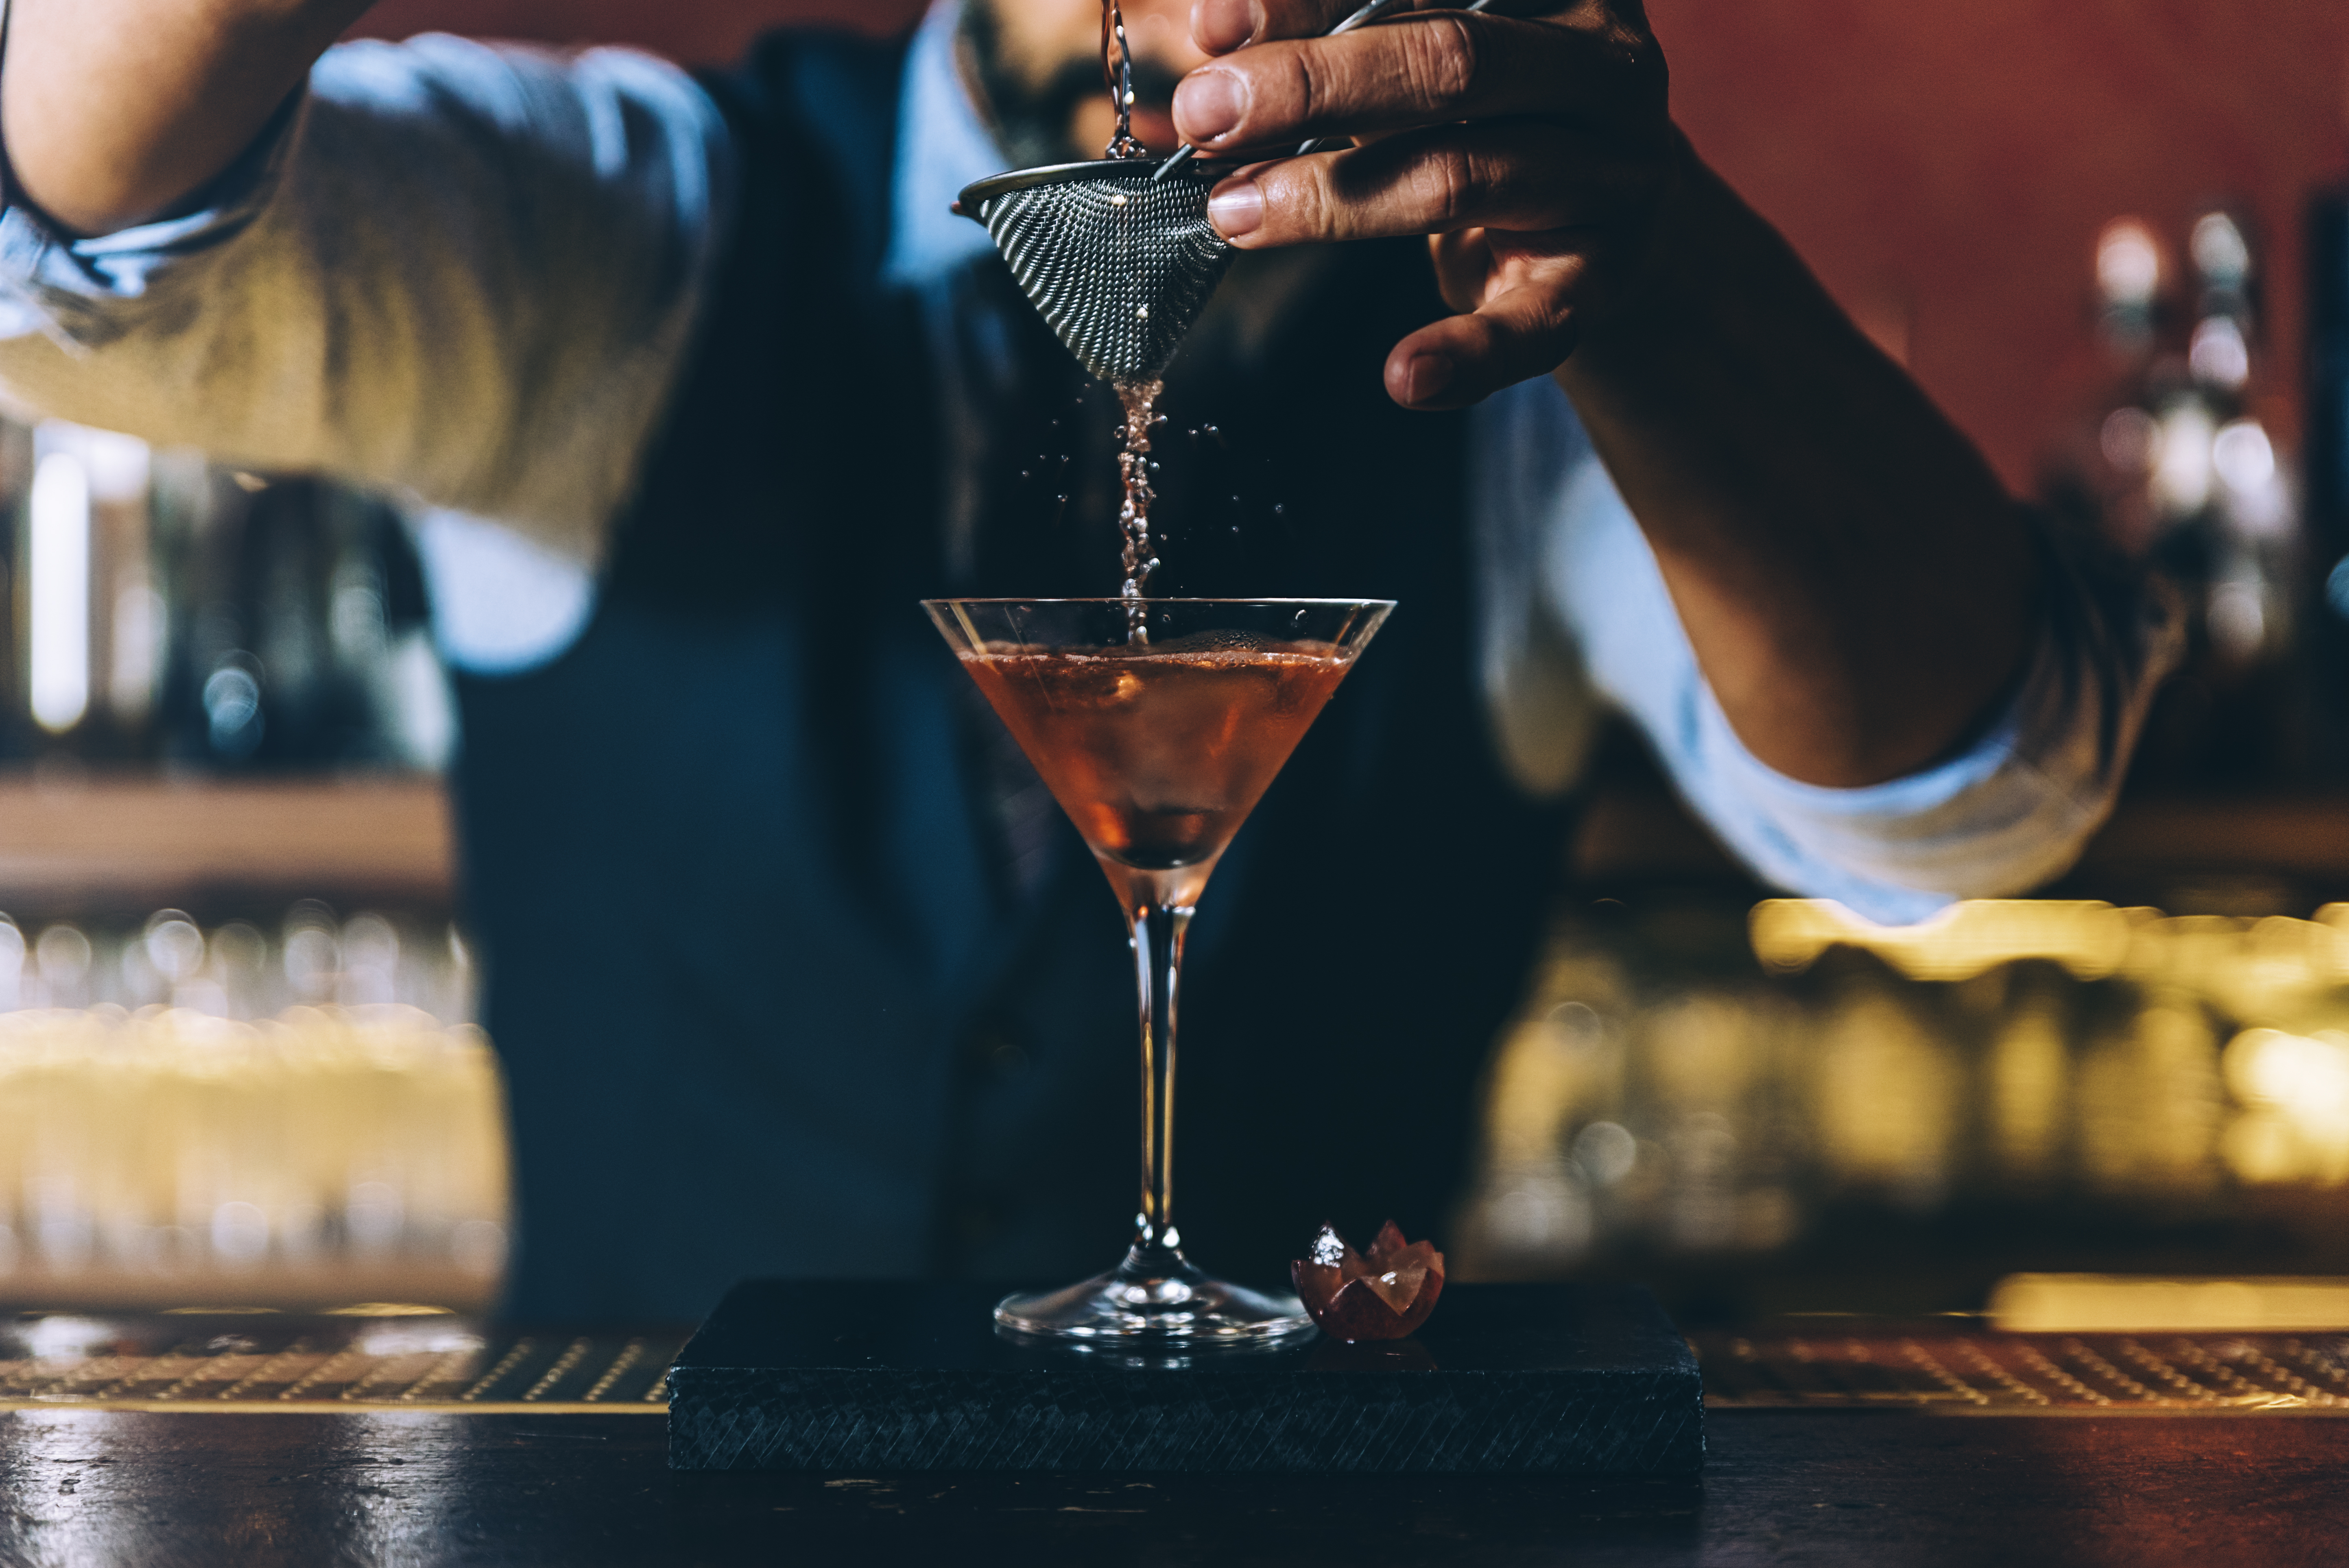 A bartender pouring a cocktail.